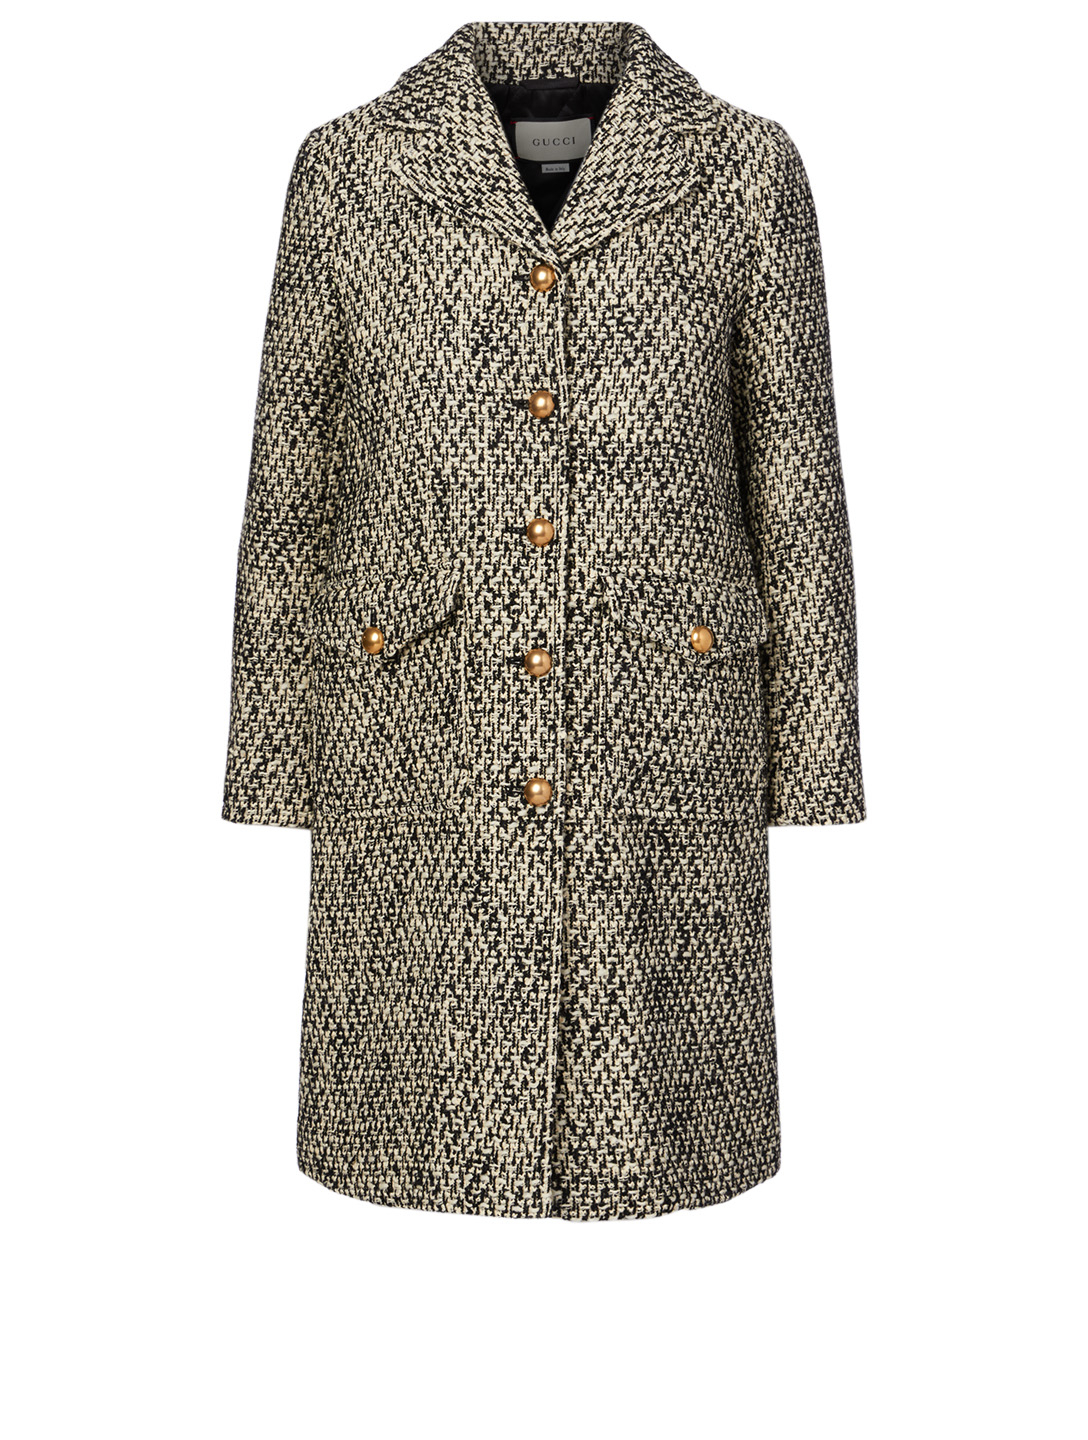 GUCCI Wool-Blend Tweed Coat With Double G Women's Multi